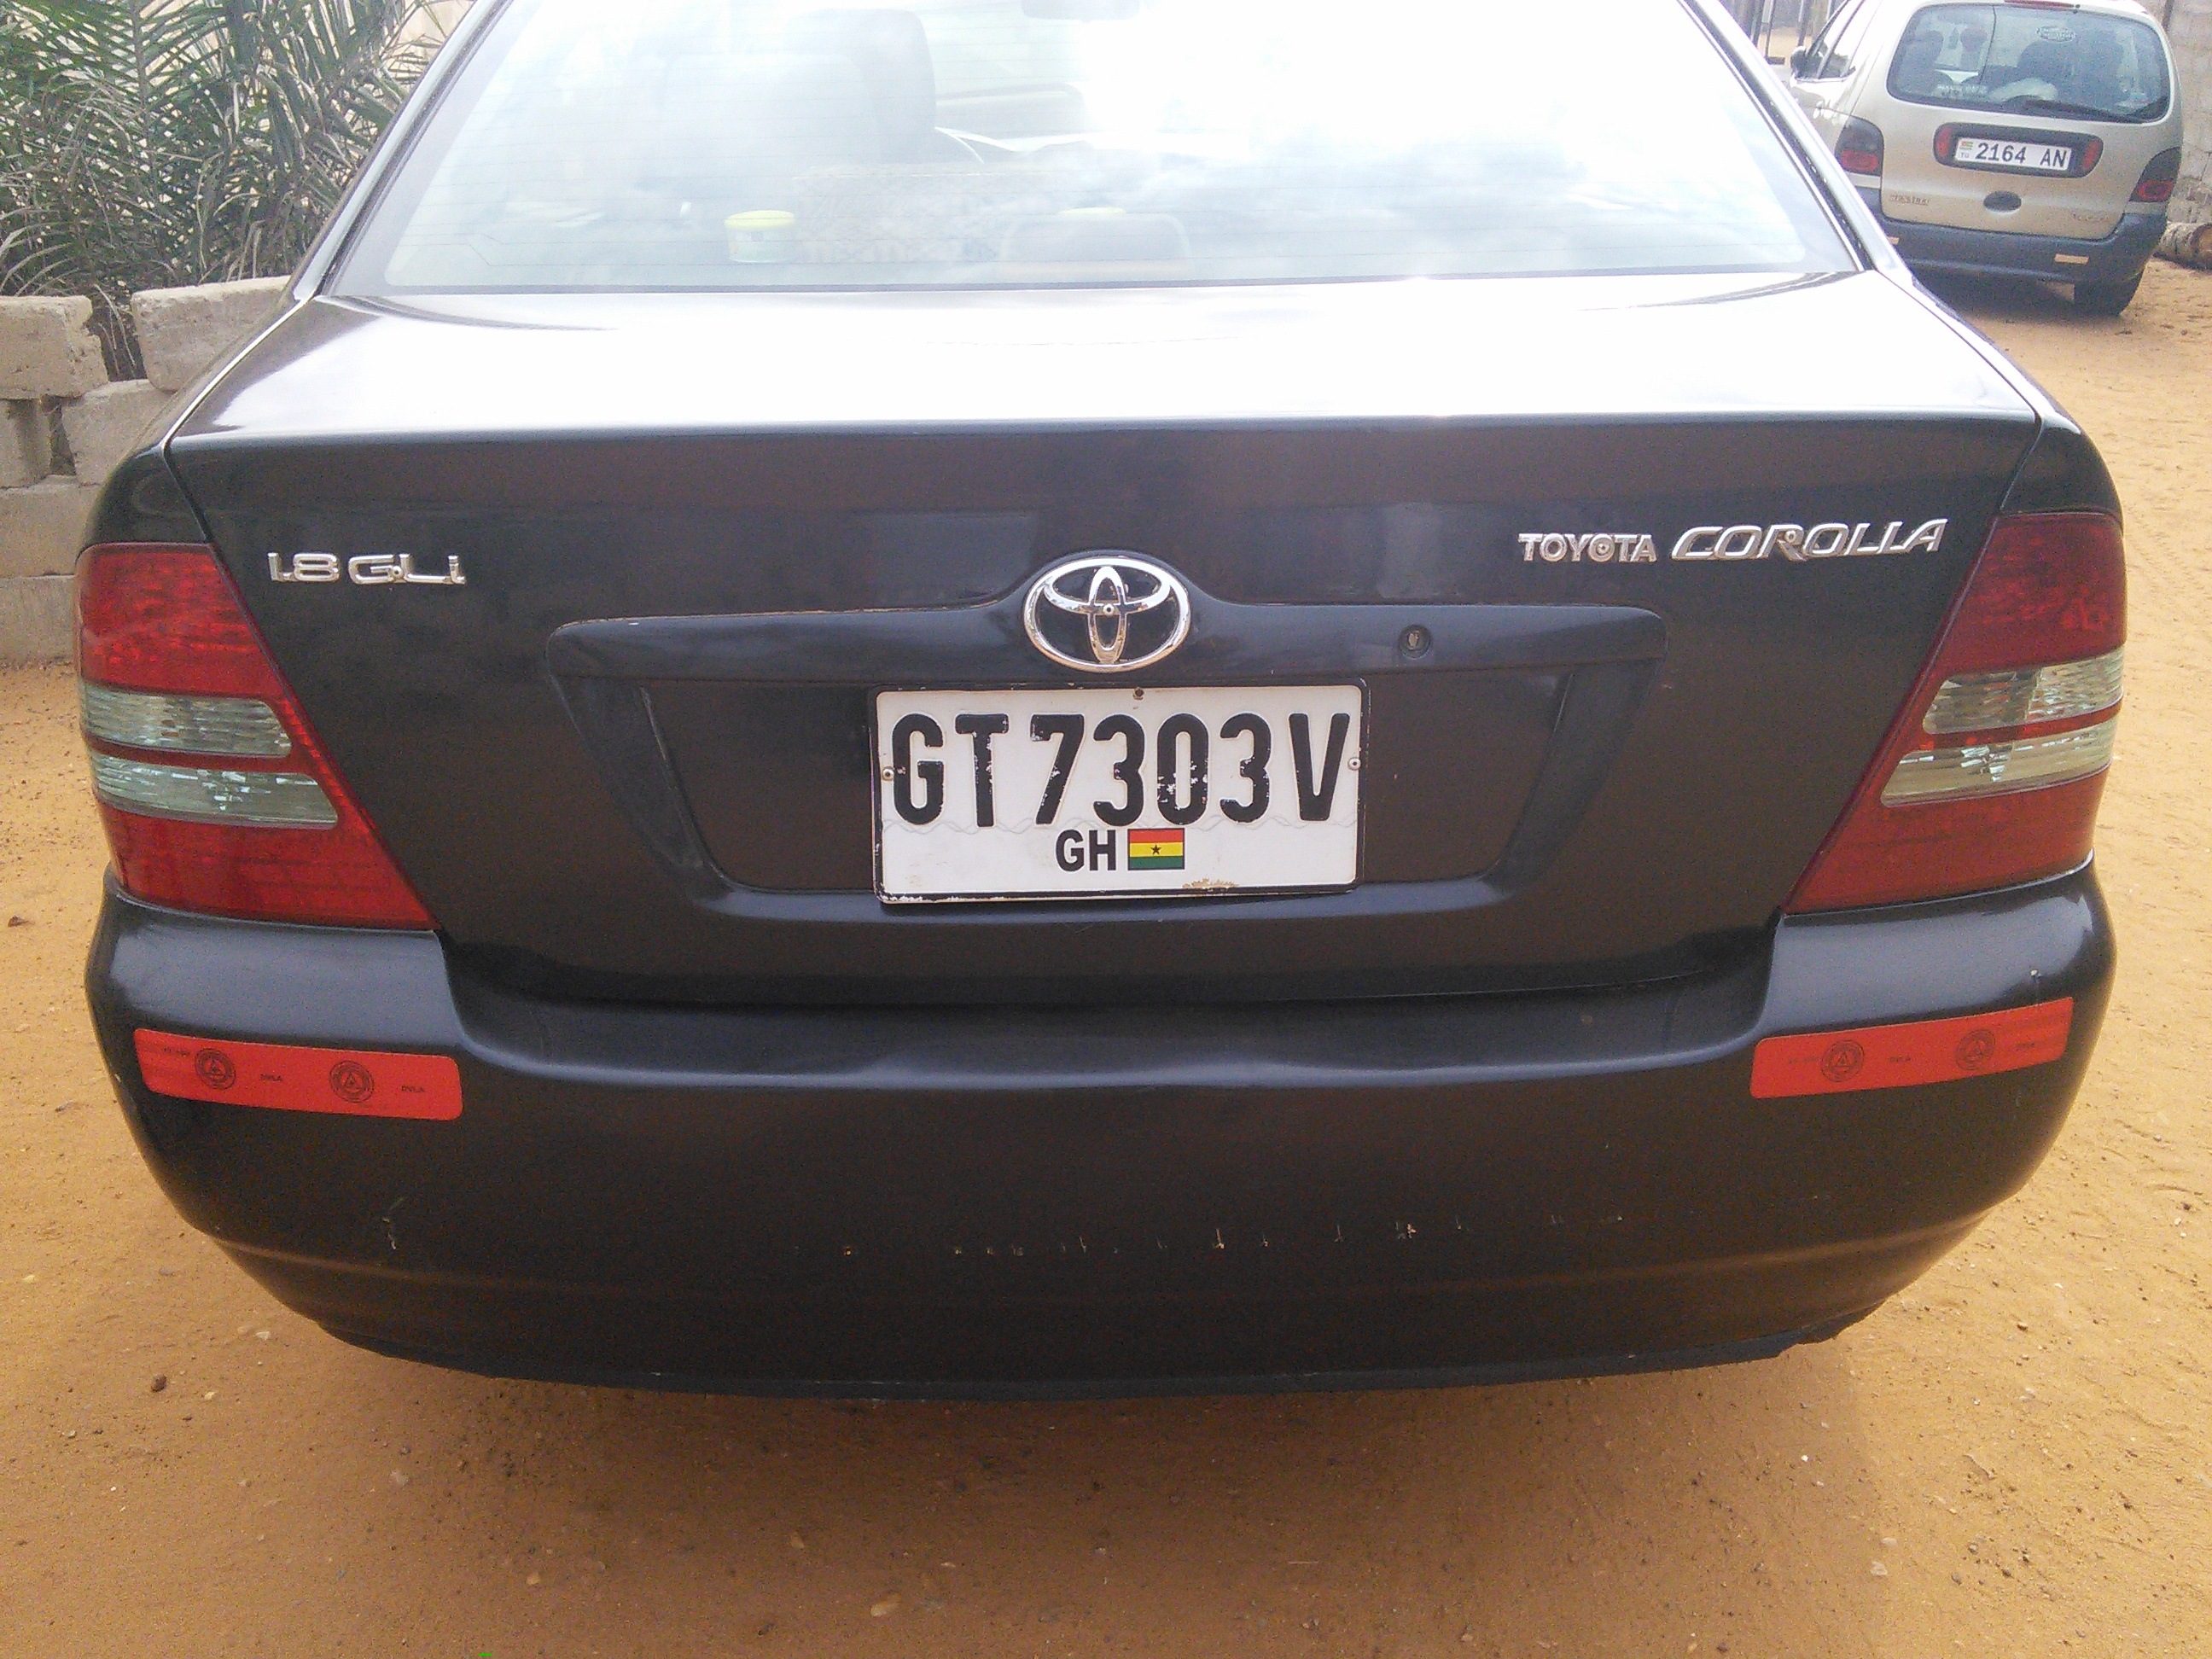 File:Ghana vehicle registration number plate (old).jpg - Wikimedia ...